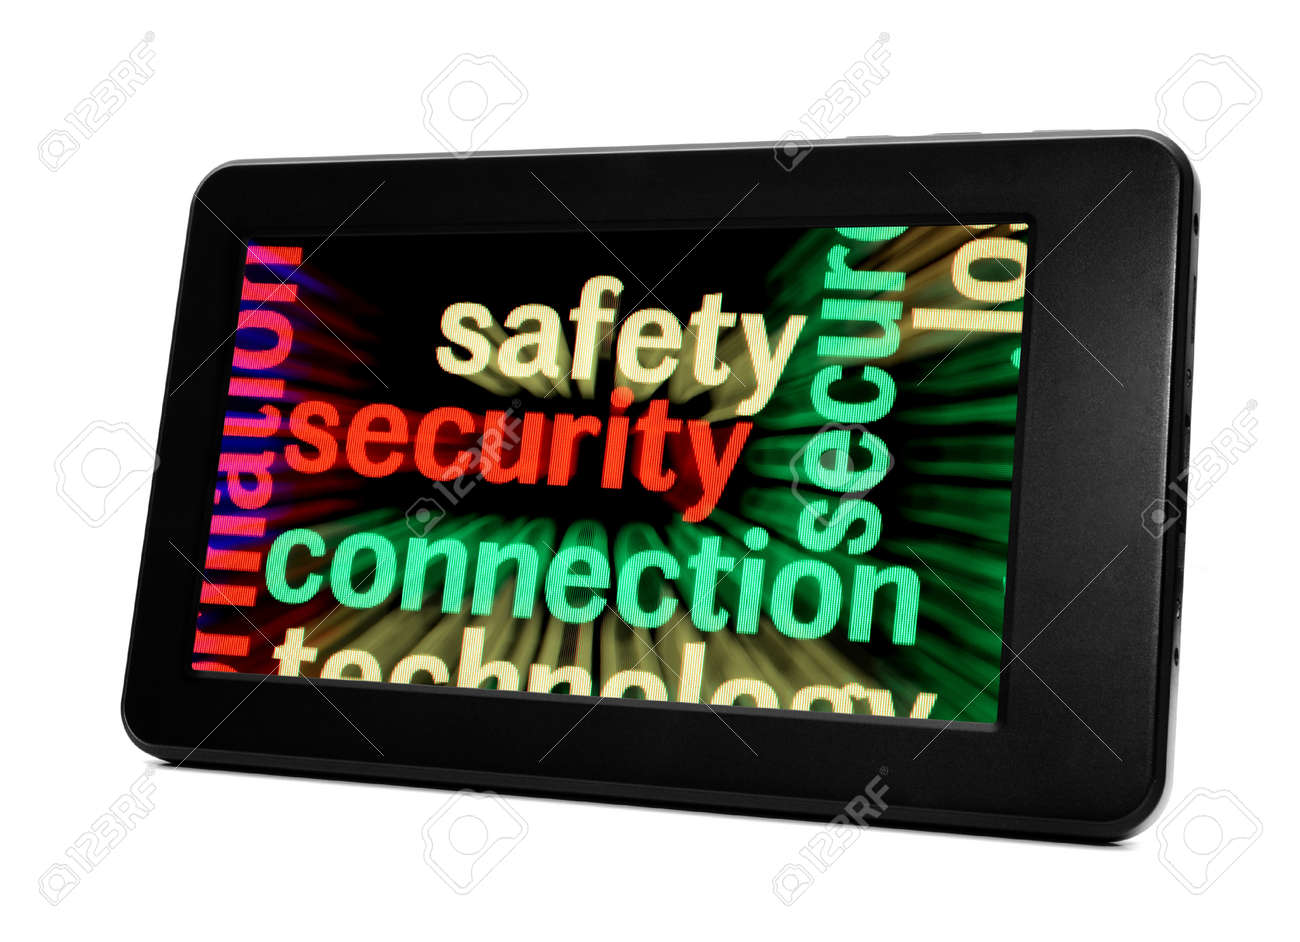 Safety security connection Stock Photo - 18389212